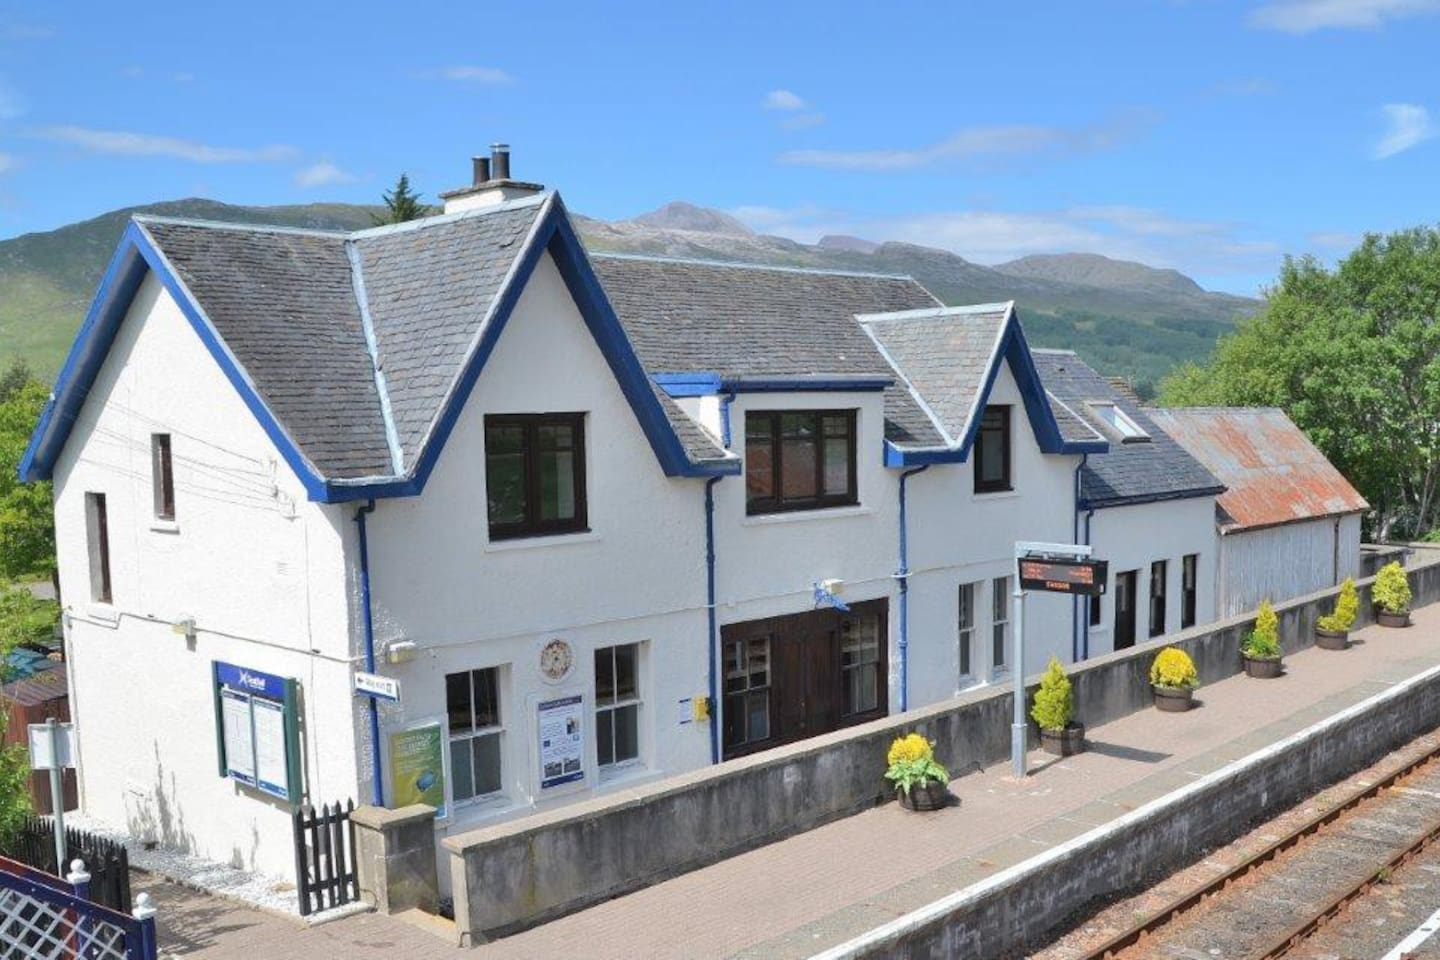 The Station House in stunning scenery - only four trains per day each way!